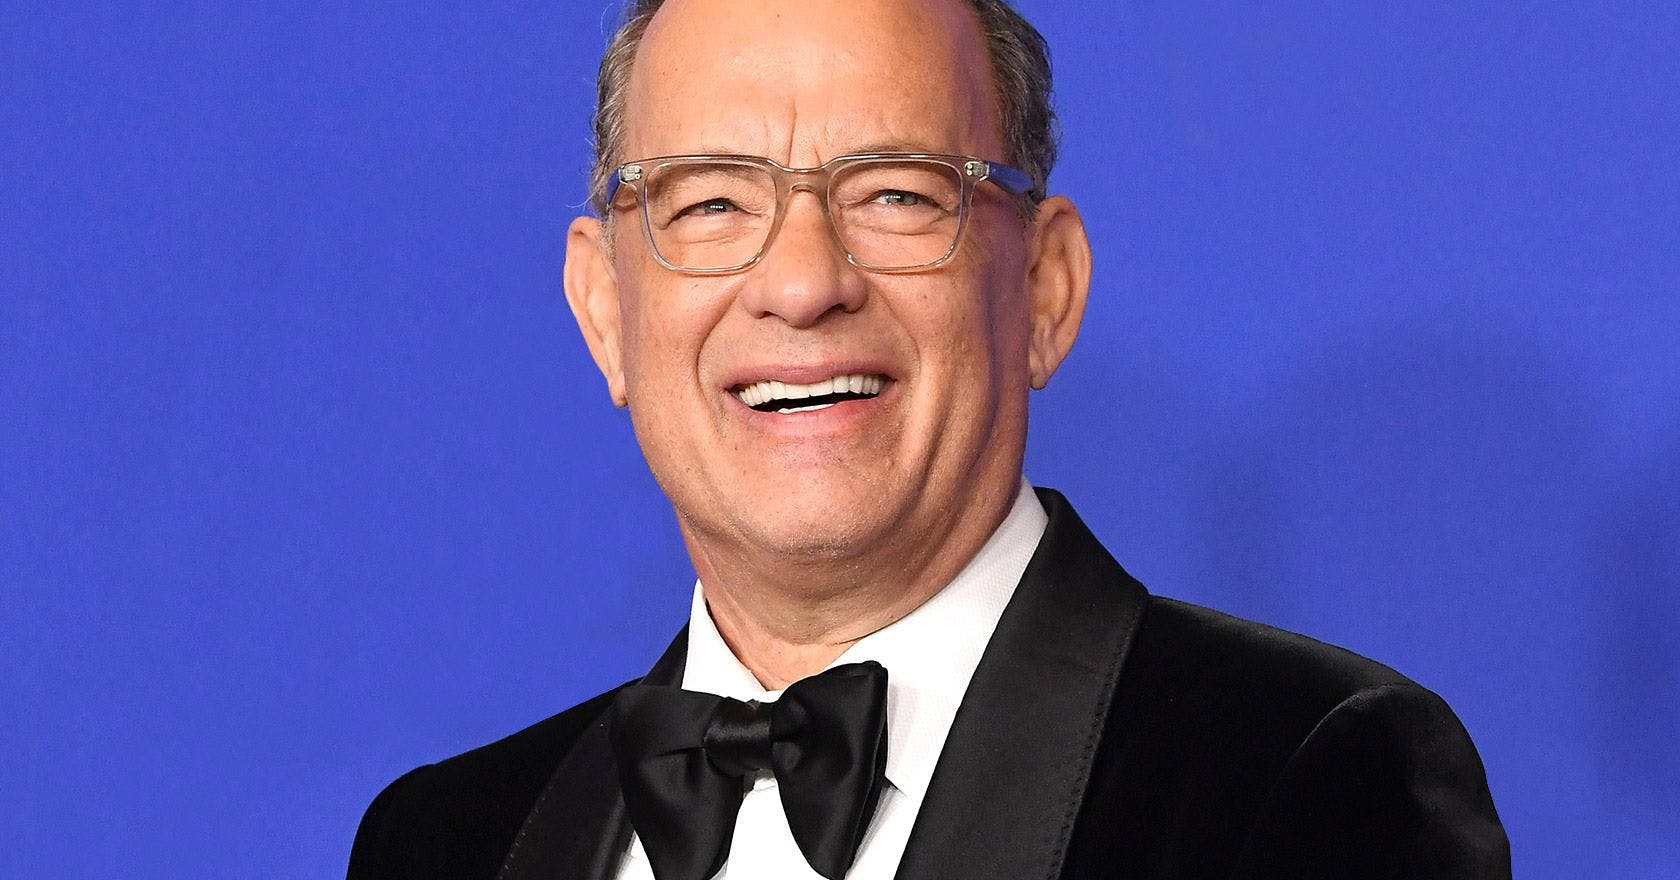 Tom Hanks is the nicest man in Hollywood, and these tweets confirm it